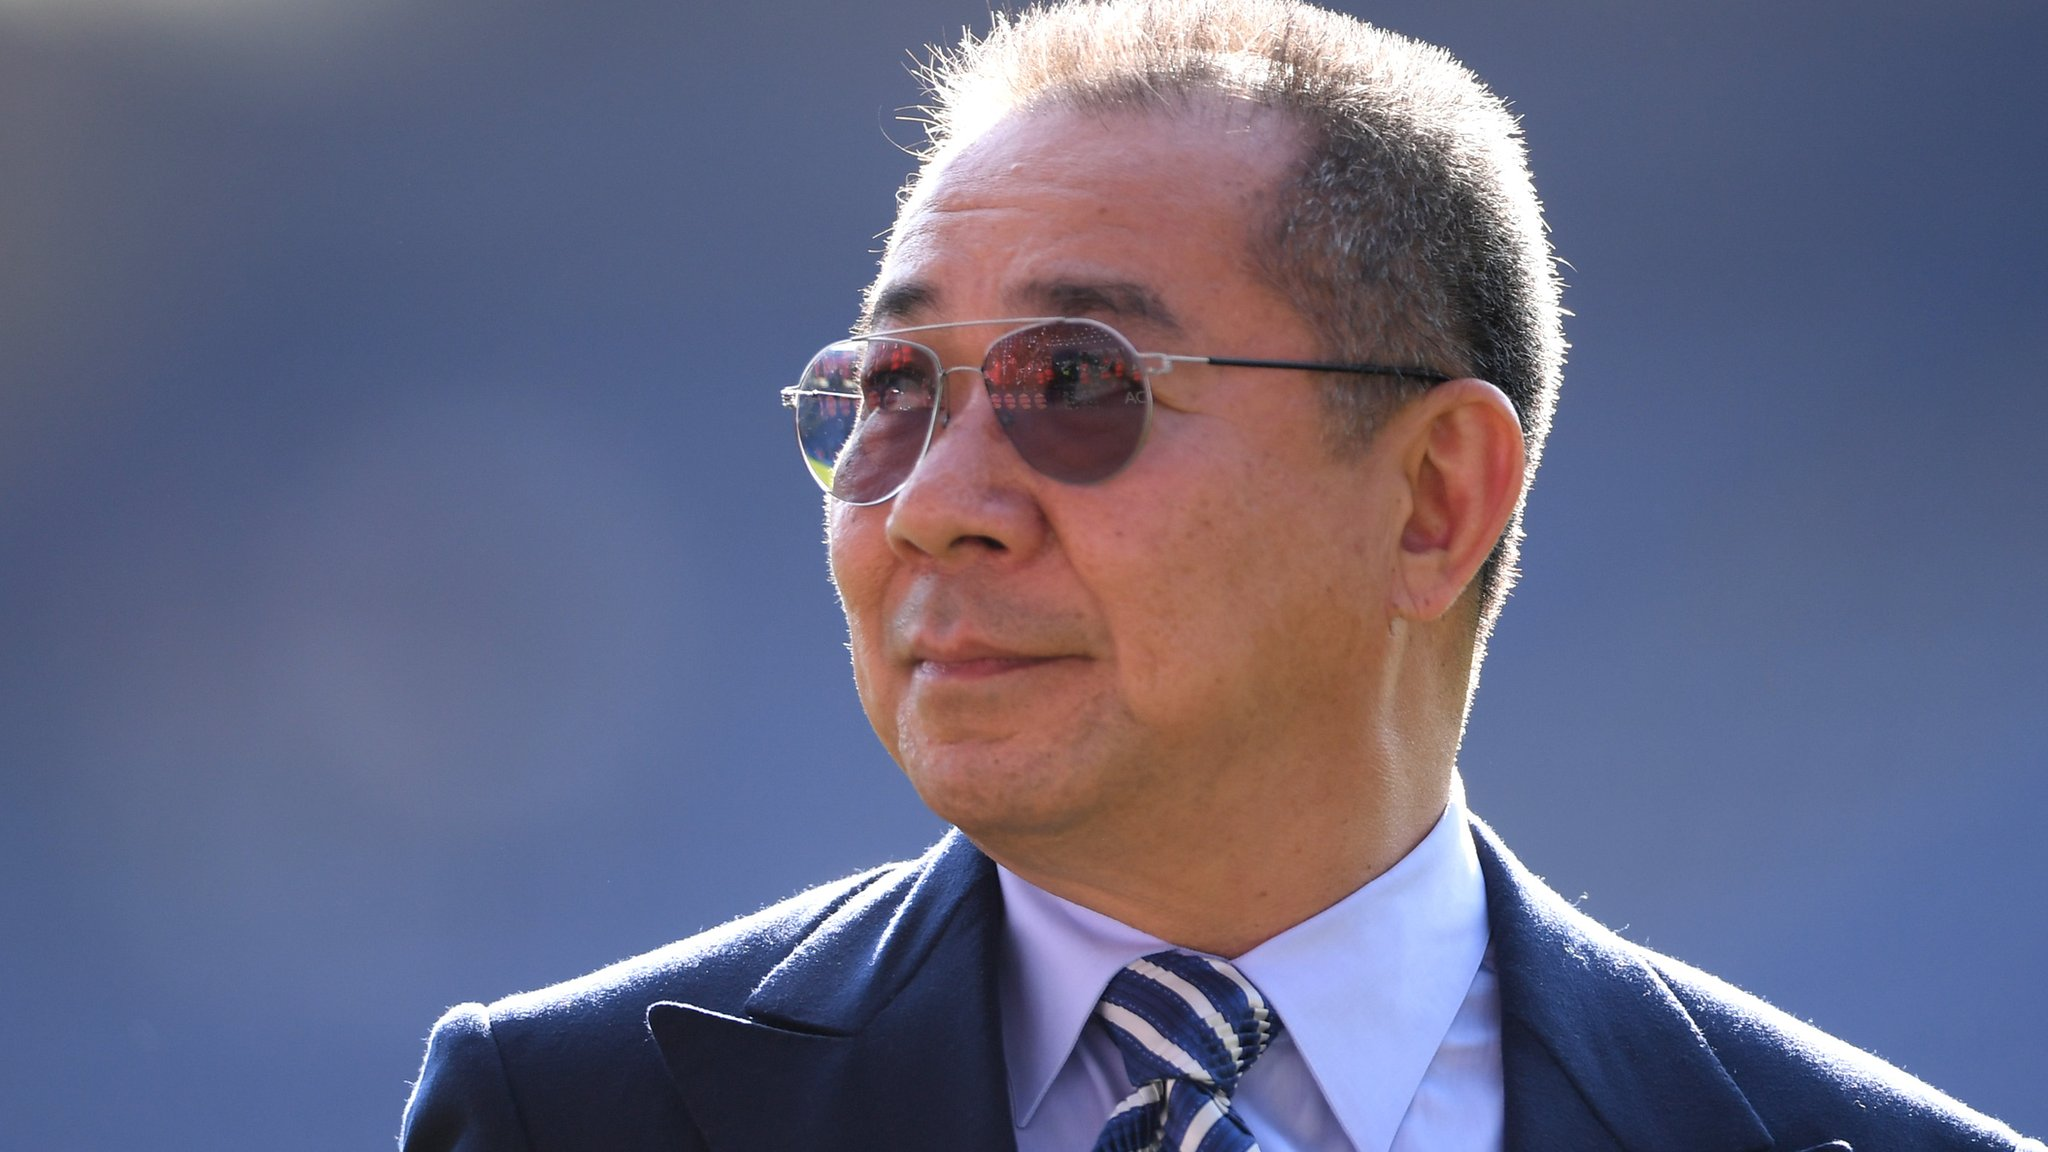 Vichai Srivaddhanaprabha: Leicester City chairman to be honoured with statue